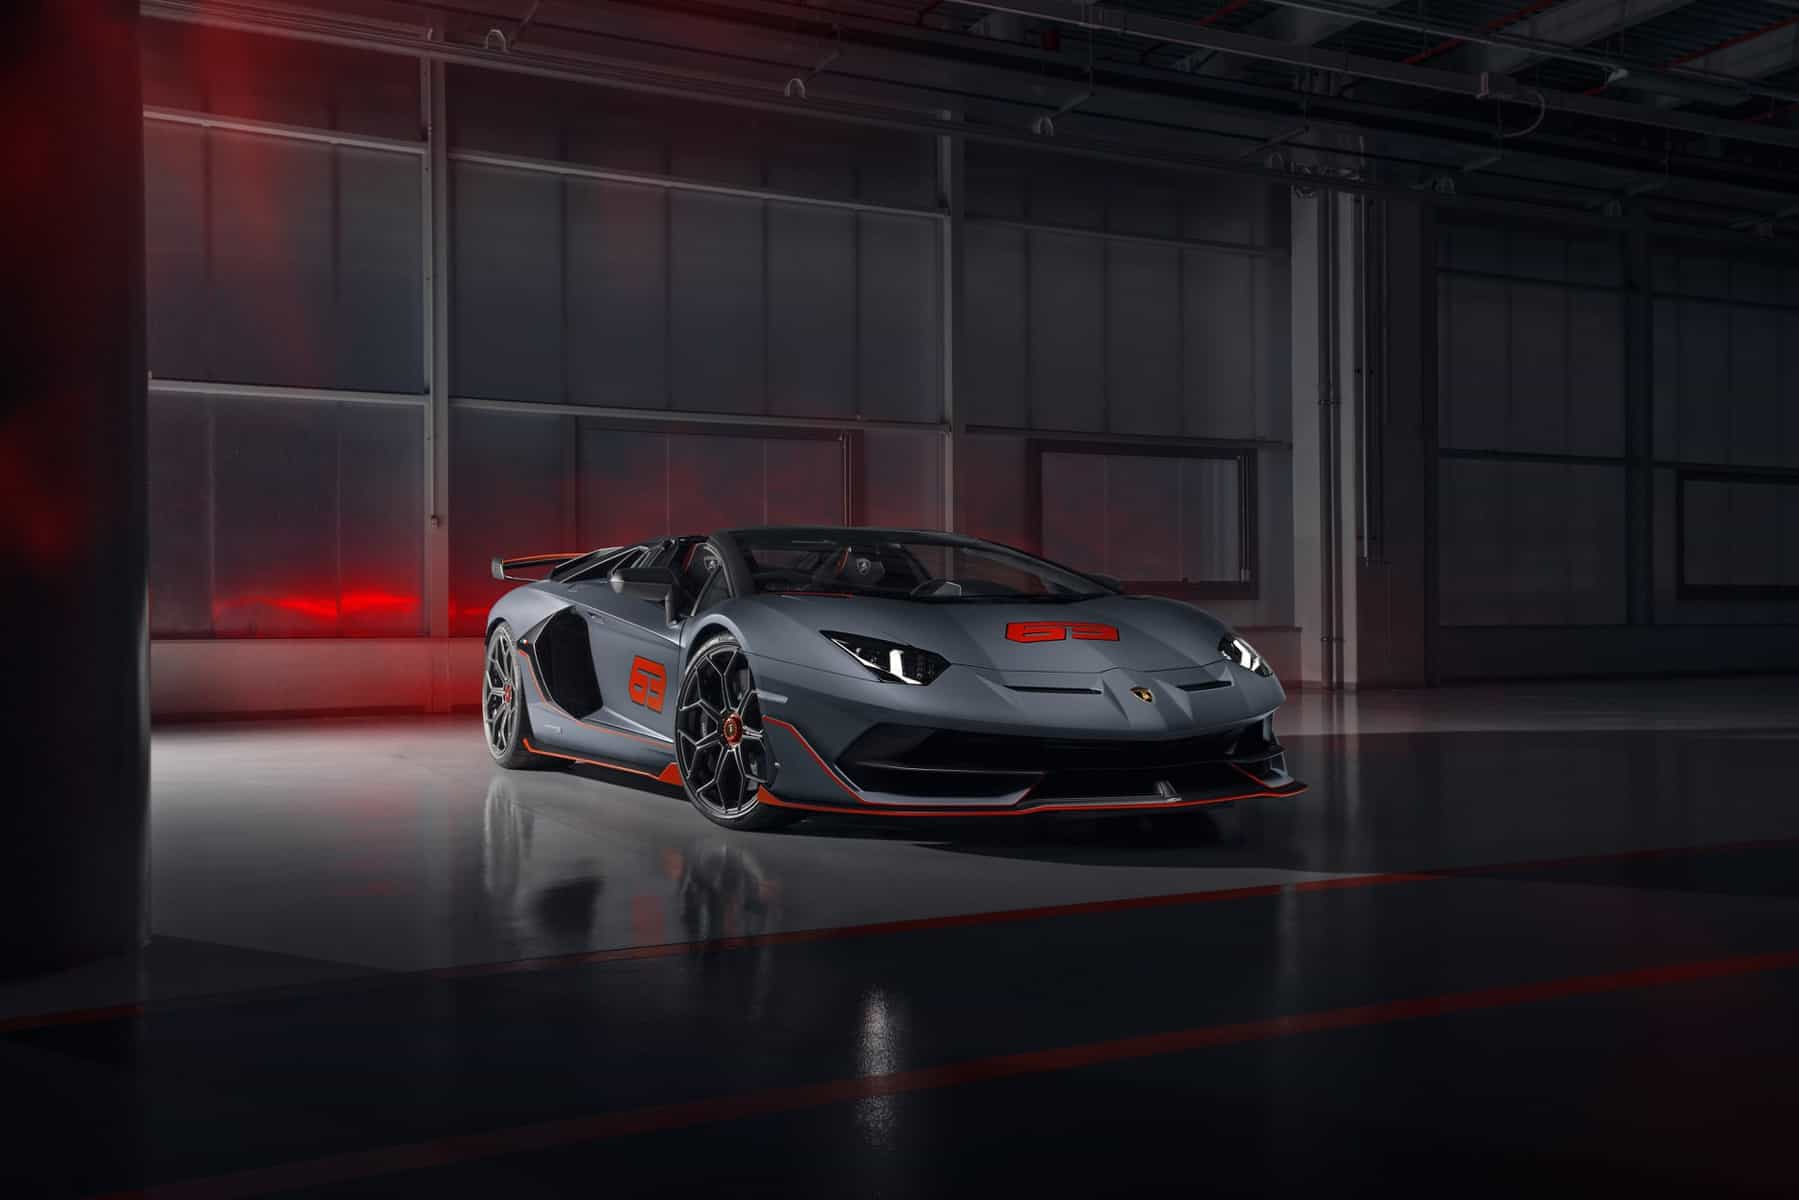 The Beauty and the Beast: Lamborghini Aventador SVJ 63 Roadster